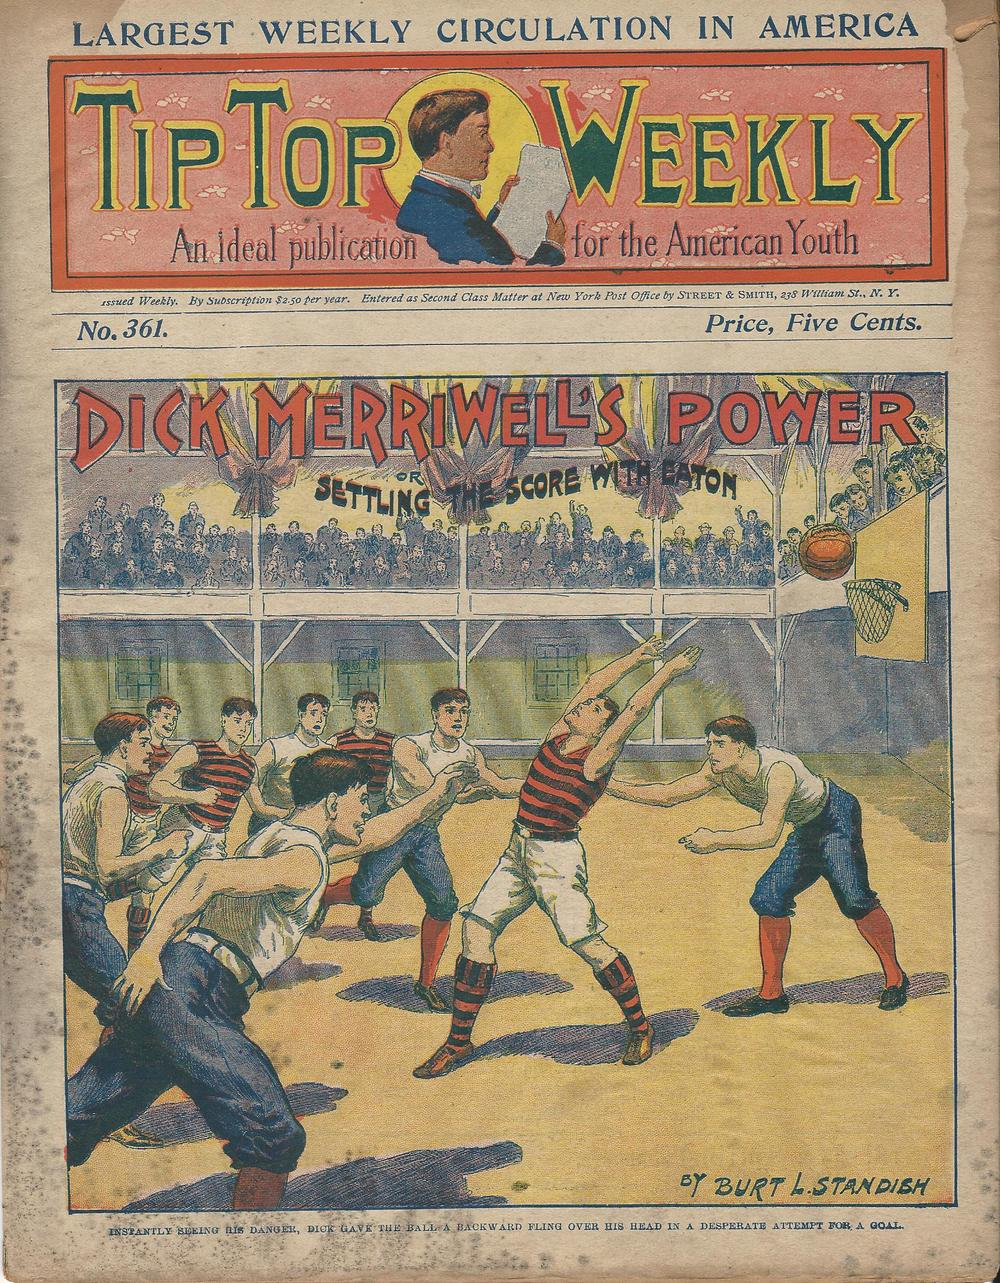 Tip Top Weekly No. 361 (March 14, 1903) – Dick Merriwell's older brother Frank was the flagship character of this long-running weekly, but this issue features Dick as captain of the Yale basketball team. In the course of the story, Dick saves the day (and the game) when he discovers that the water in the training room has been drugged with a mysterious white powder that is causing his players to play drunkenly. When everybody stops drinking the water, they sober up enough to claim a victory.